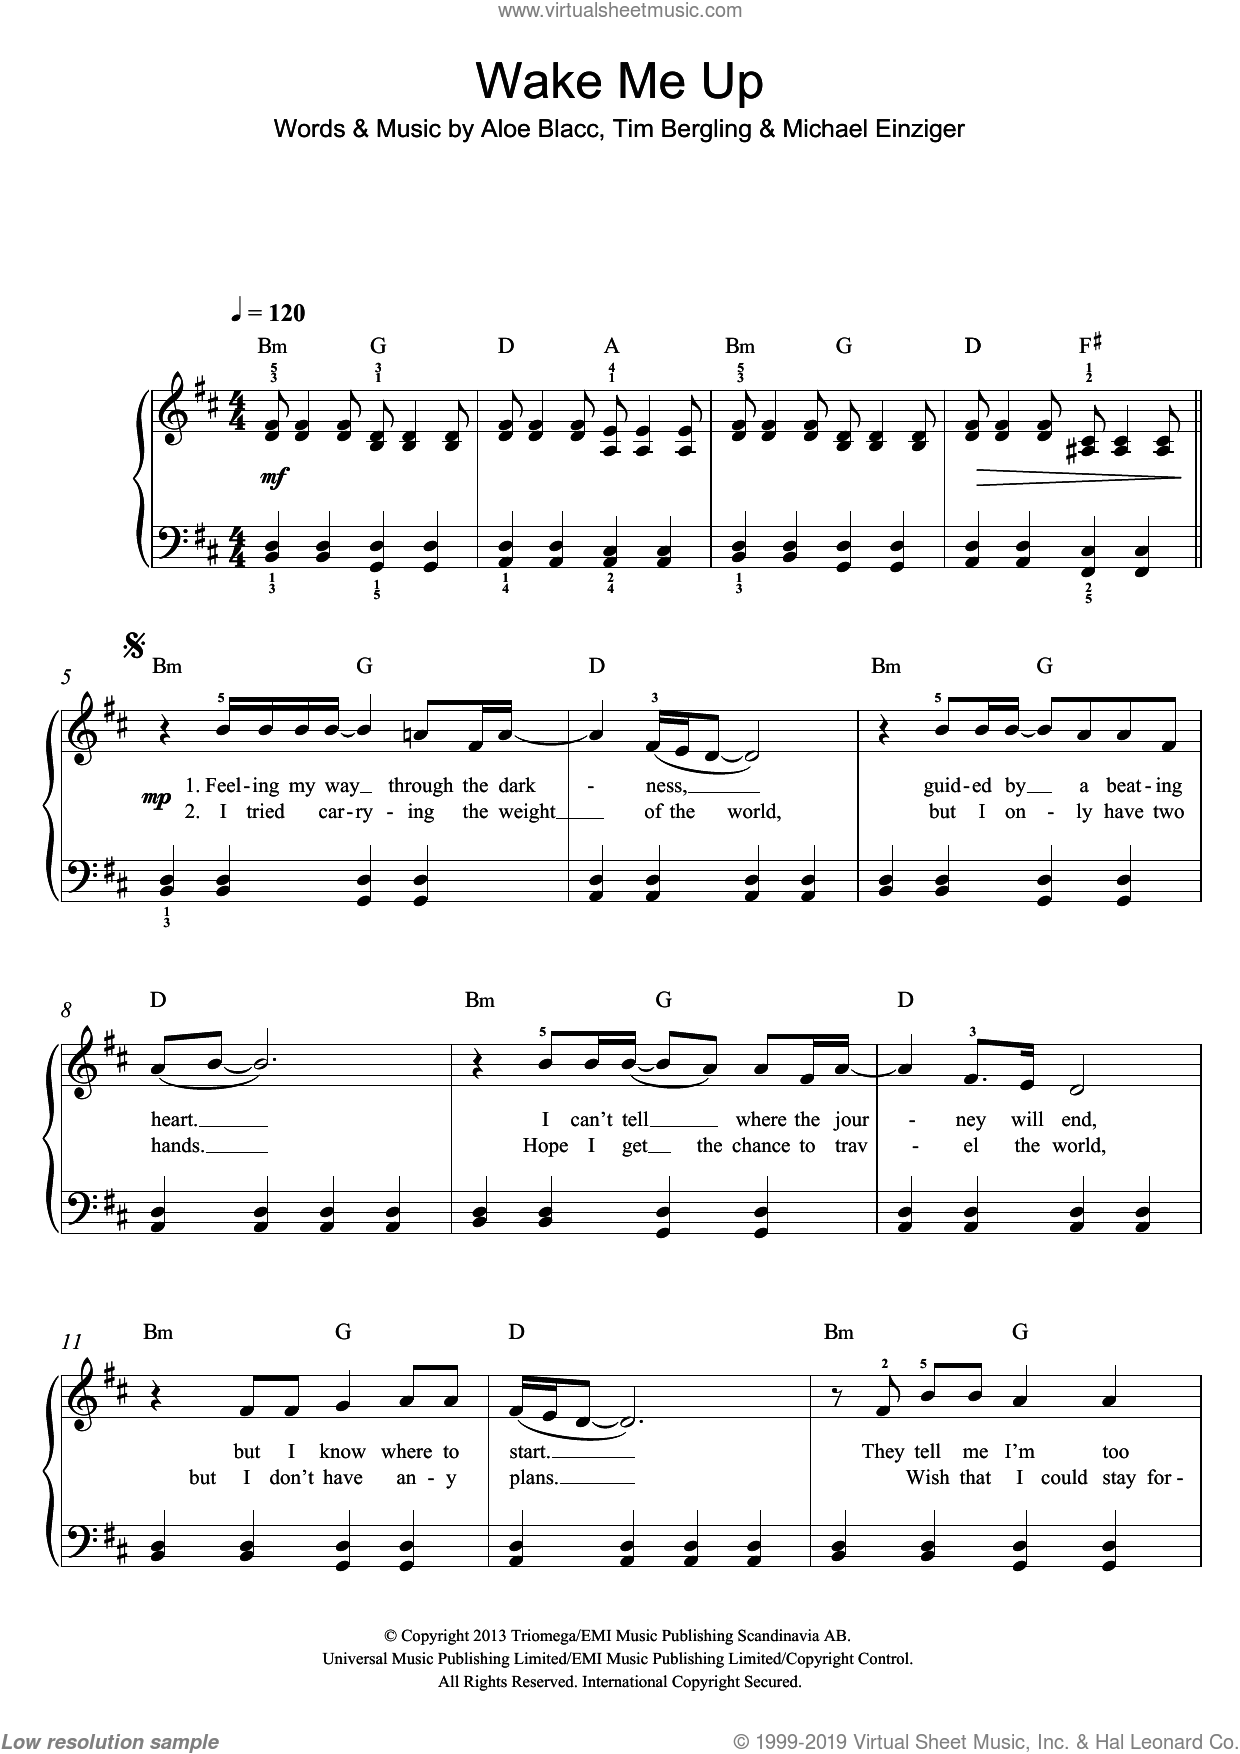 Wake Me Up sheet music for piano solo by Avicii, Aloe Blacc, Michael Einziger and Tim Bergling, easy skill level